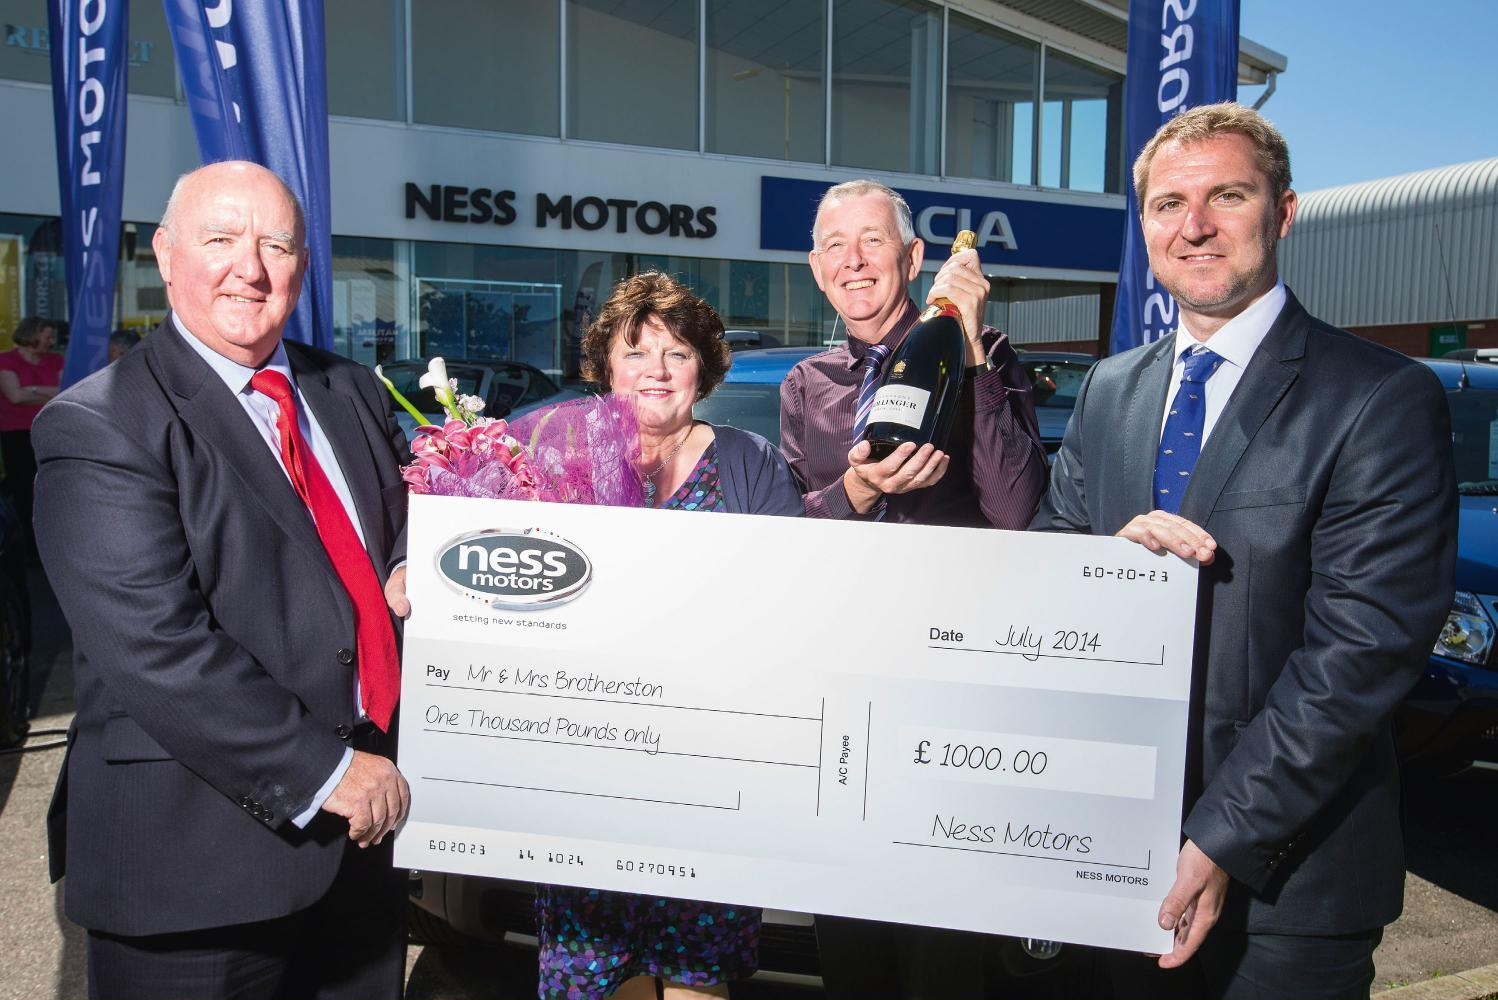 Ness Motors sell their 1000th Dacia - A Sandero Stepway